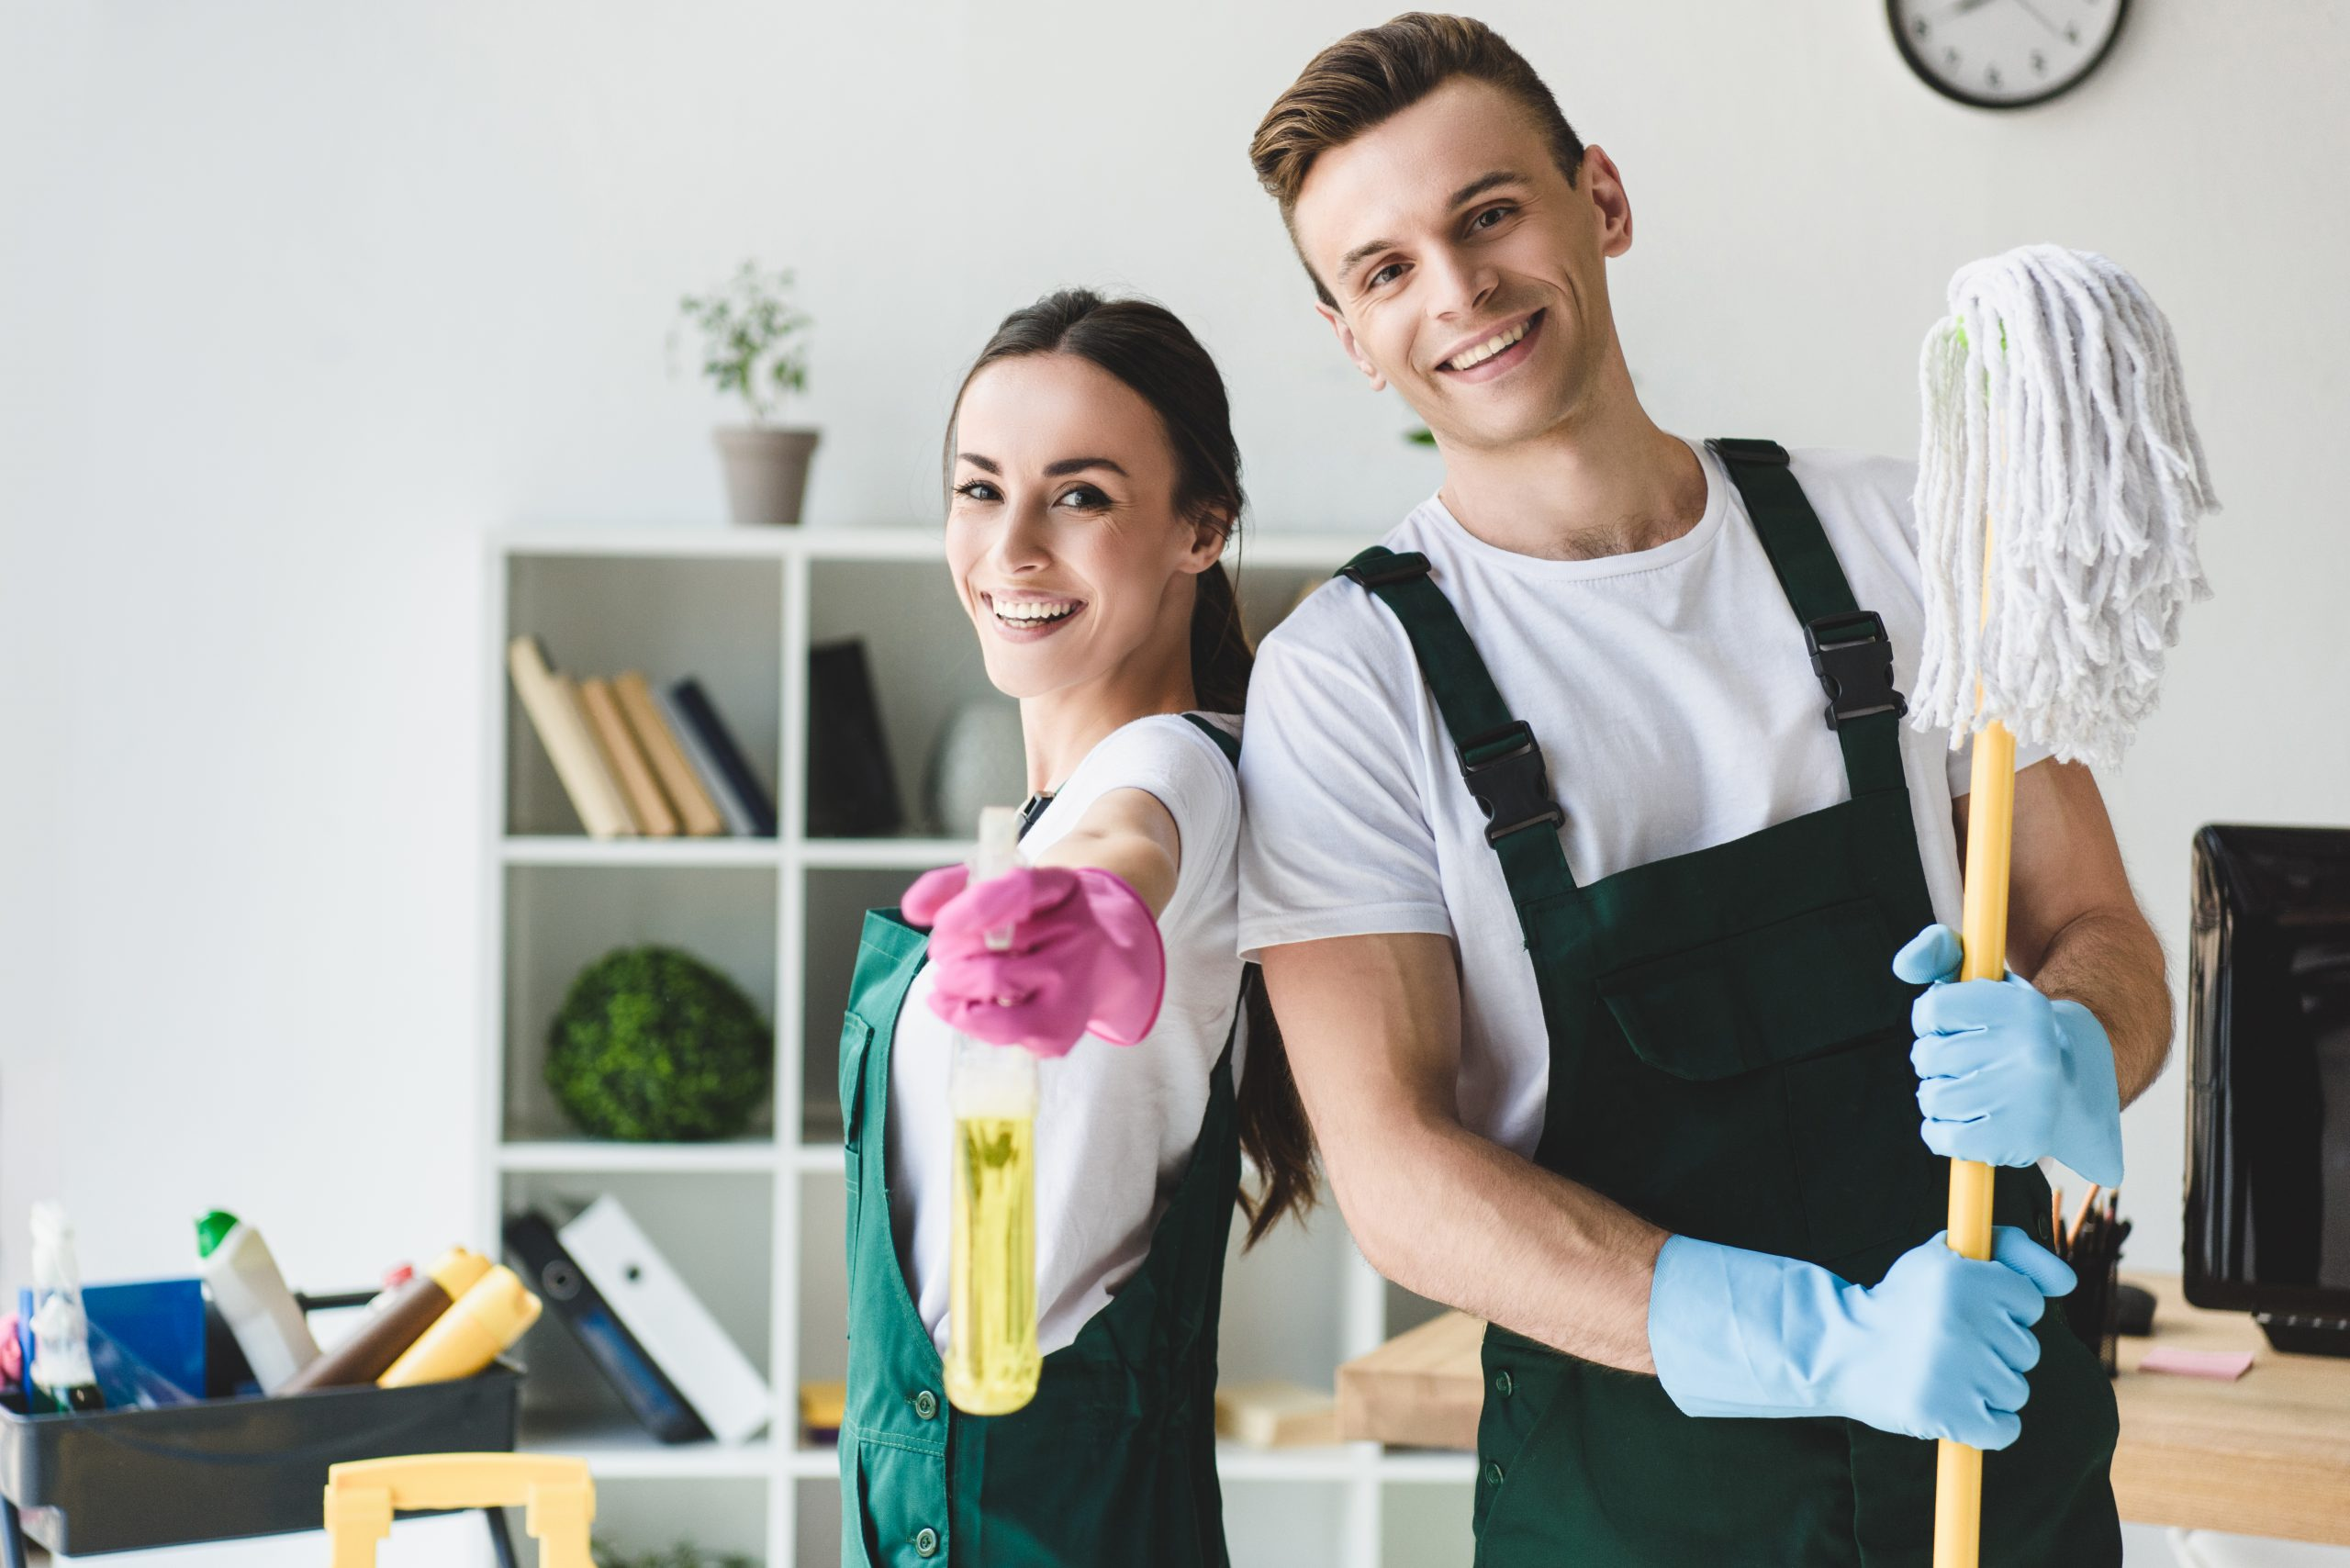 happy young cleaners with mop and spray bottle smiling at camera while cleaning office